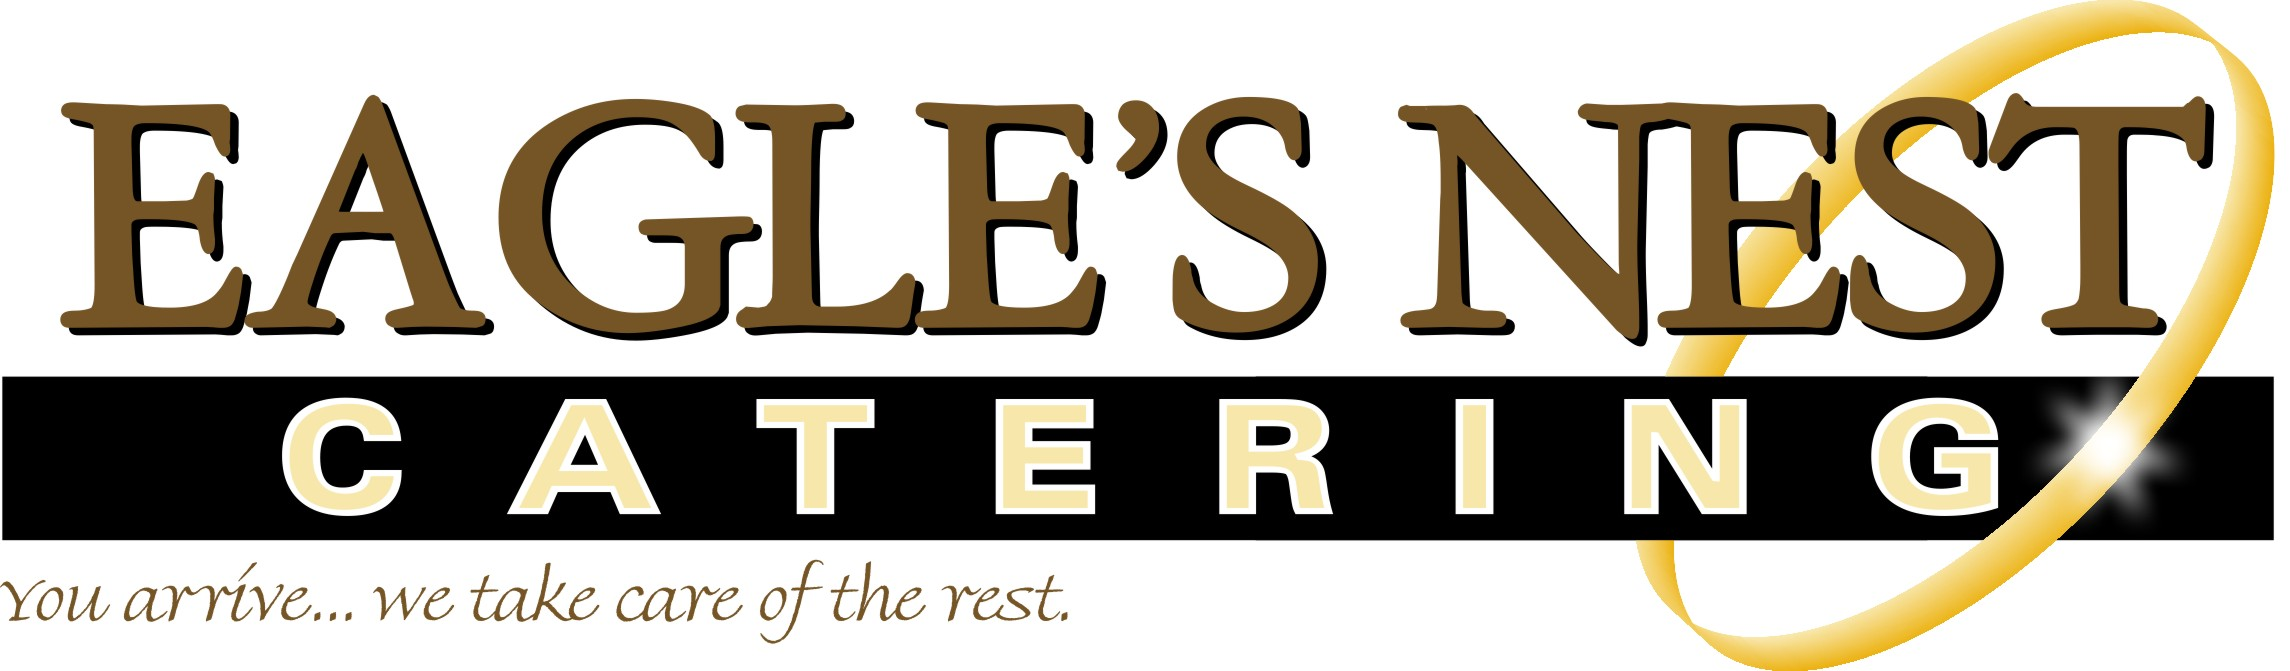 eagle-nest-catering-logo